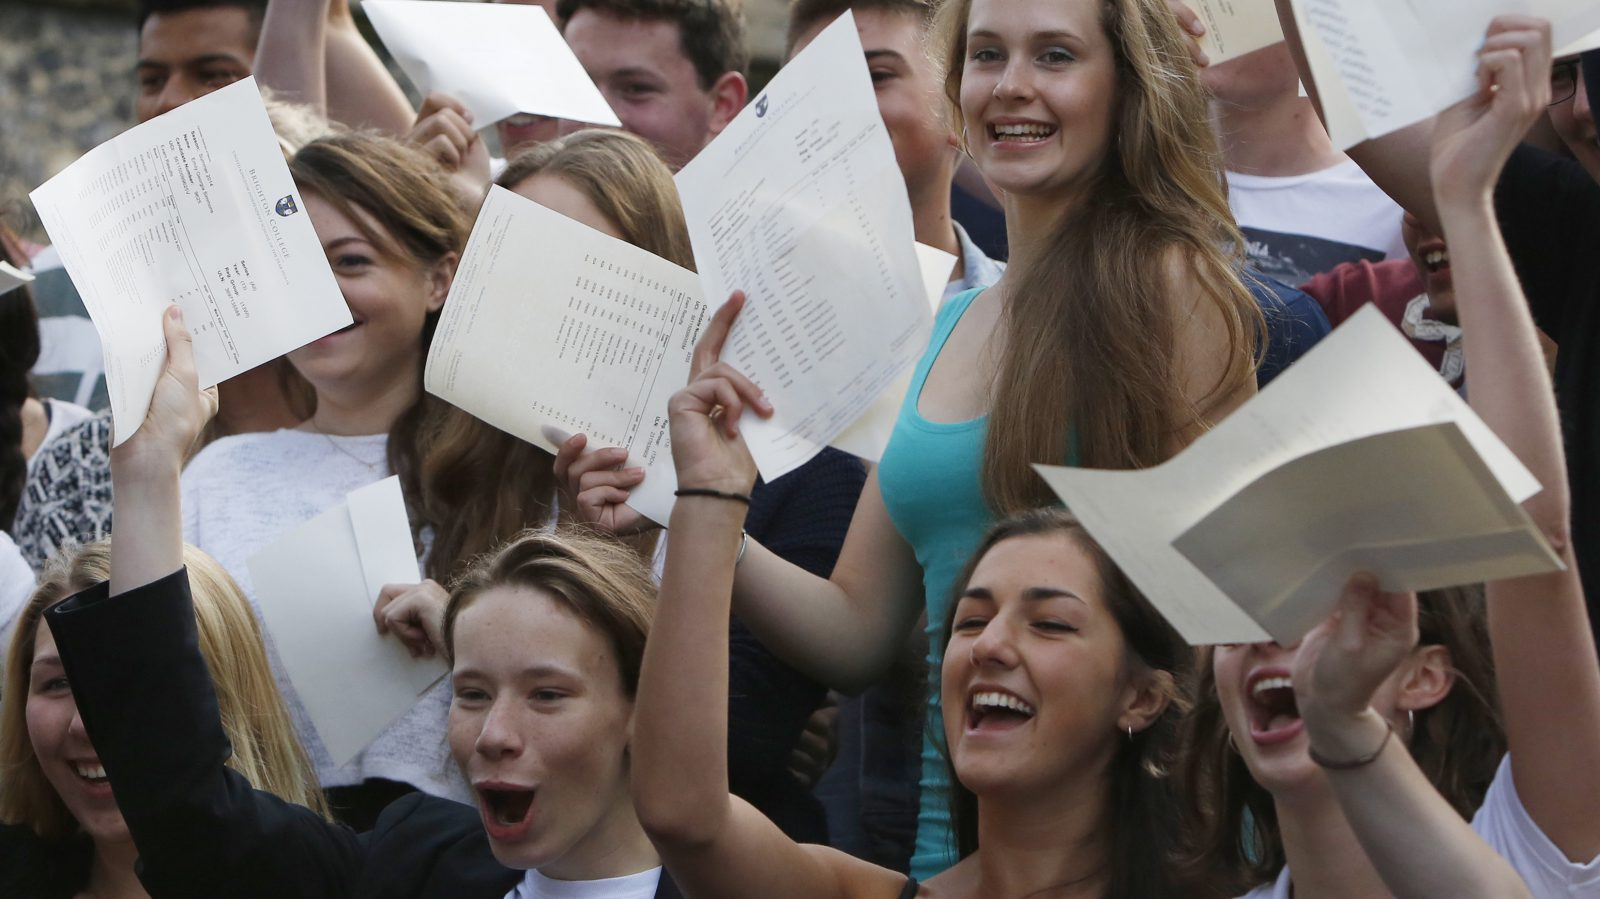 A-level student Tabitha Jackson (top R) poses with classmates for photographs, after she received her results of 4 A* A-levels, with a passrate of 99% dropping only 14 points out of a possible 1600, at Brighton College in Brighton, southern England August 14, 2014.  Hundreds of thousands of teenage students received A-level results in England, Wales and Northern Ireland on Thursday. REUTERS/Luke MacGregor  (BRITAIN - Tags: EDUCATION SOCIETY) - RTR42EL4